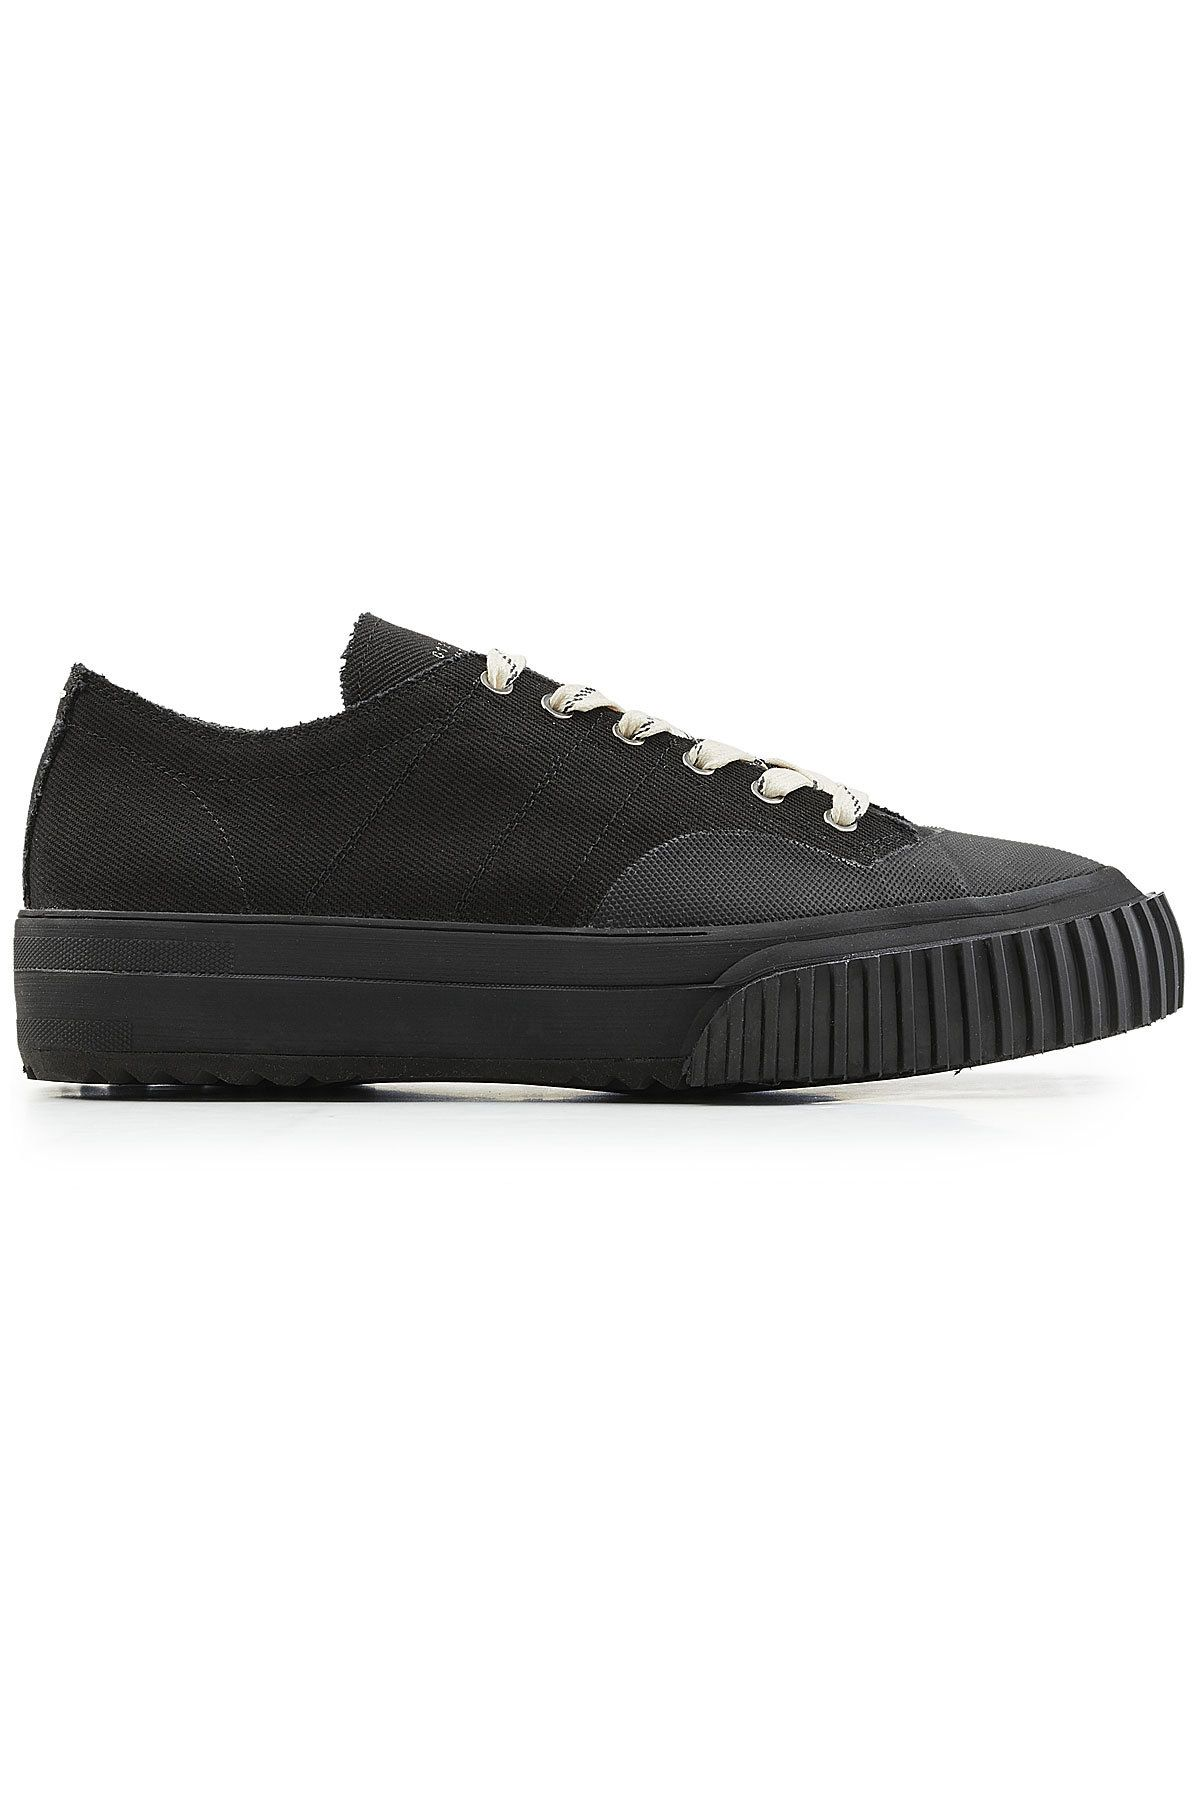 Pin by matt willis on Trainers | Sneakers, All black